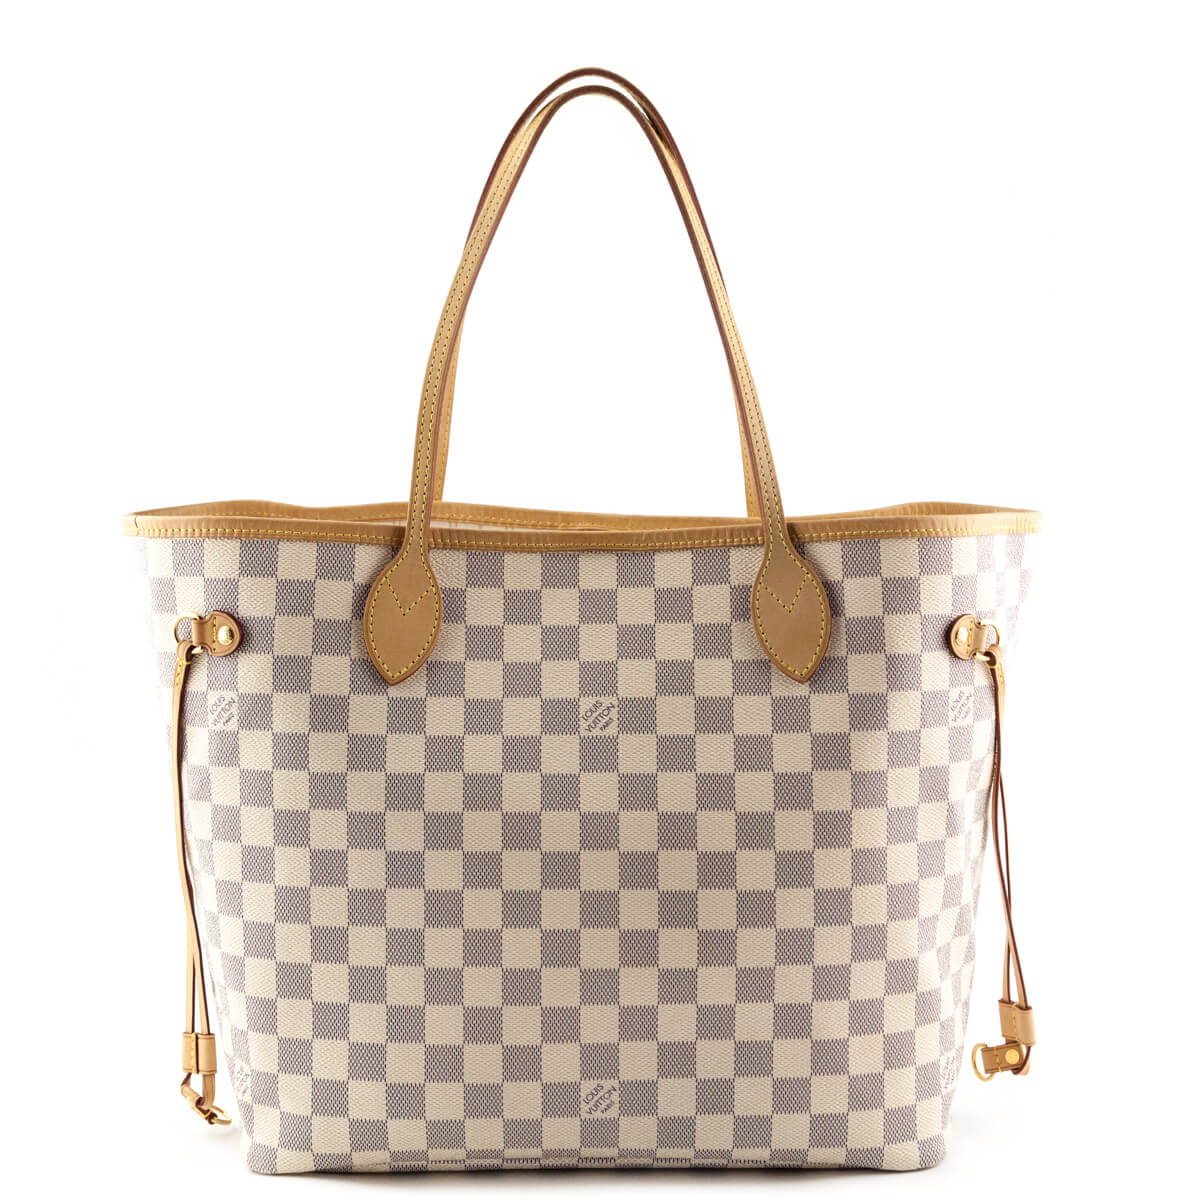 d4f53da16881 Louis Vuitton Damier Azur Neverfull MM - LOVE that BAG - Preowned Authentic  Designer Handbags ...